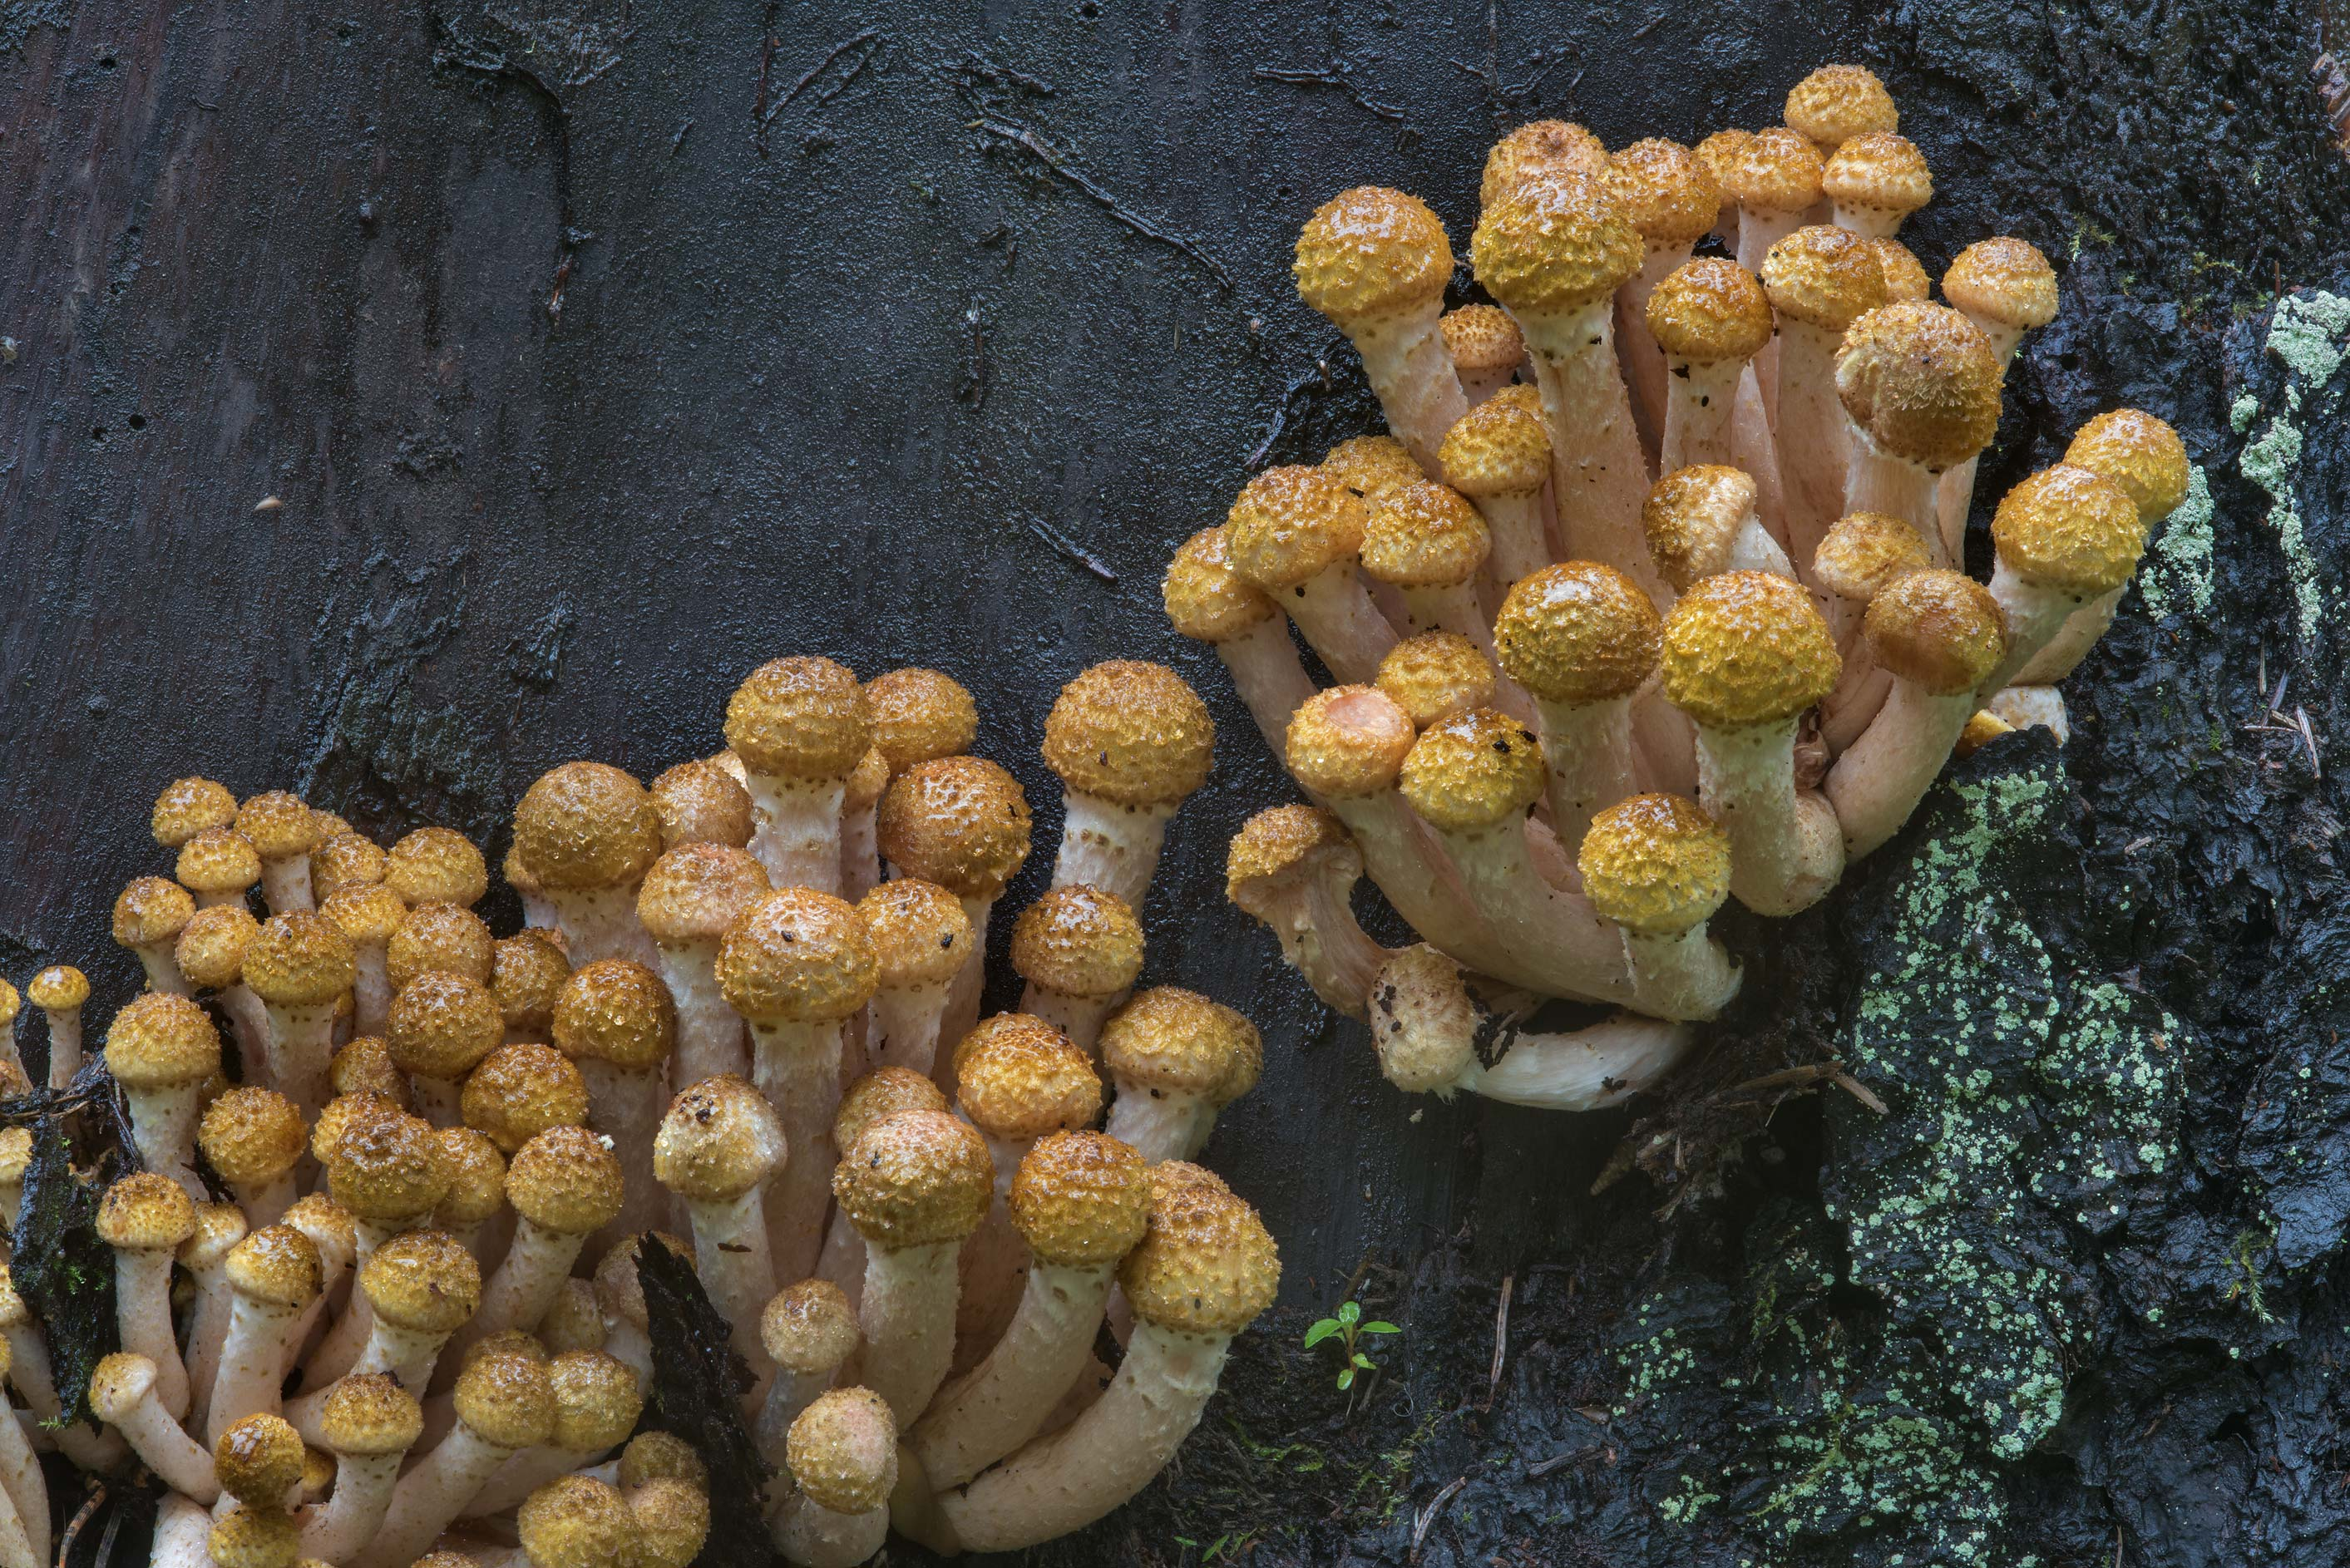 Groups of young northern honey mushrooms...a suburb of St.Petersburg, Russia